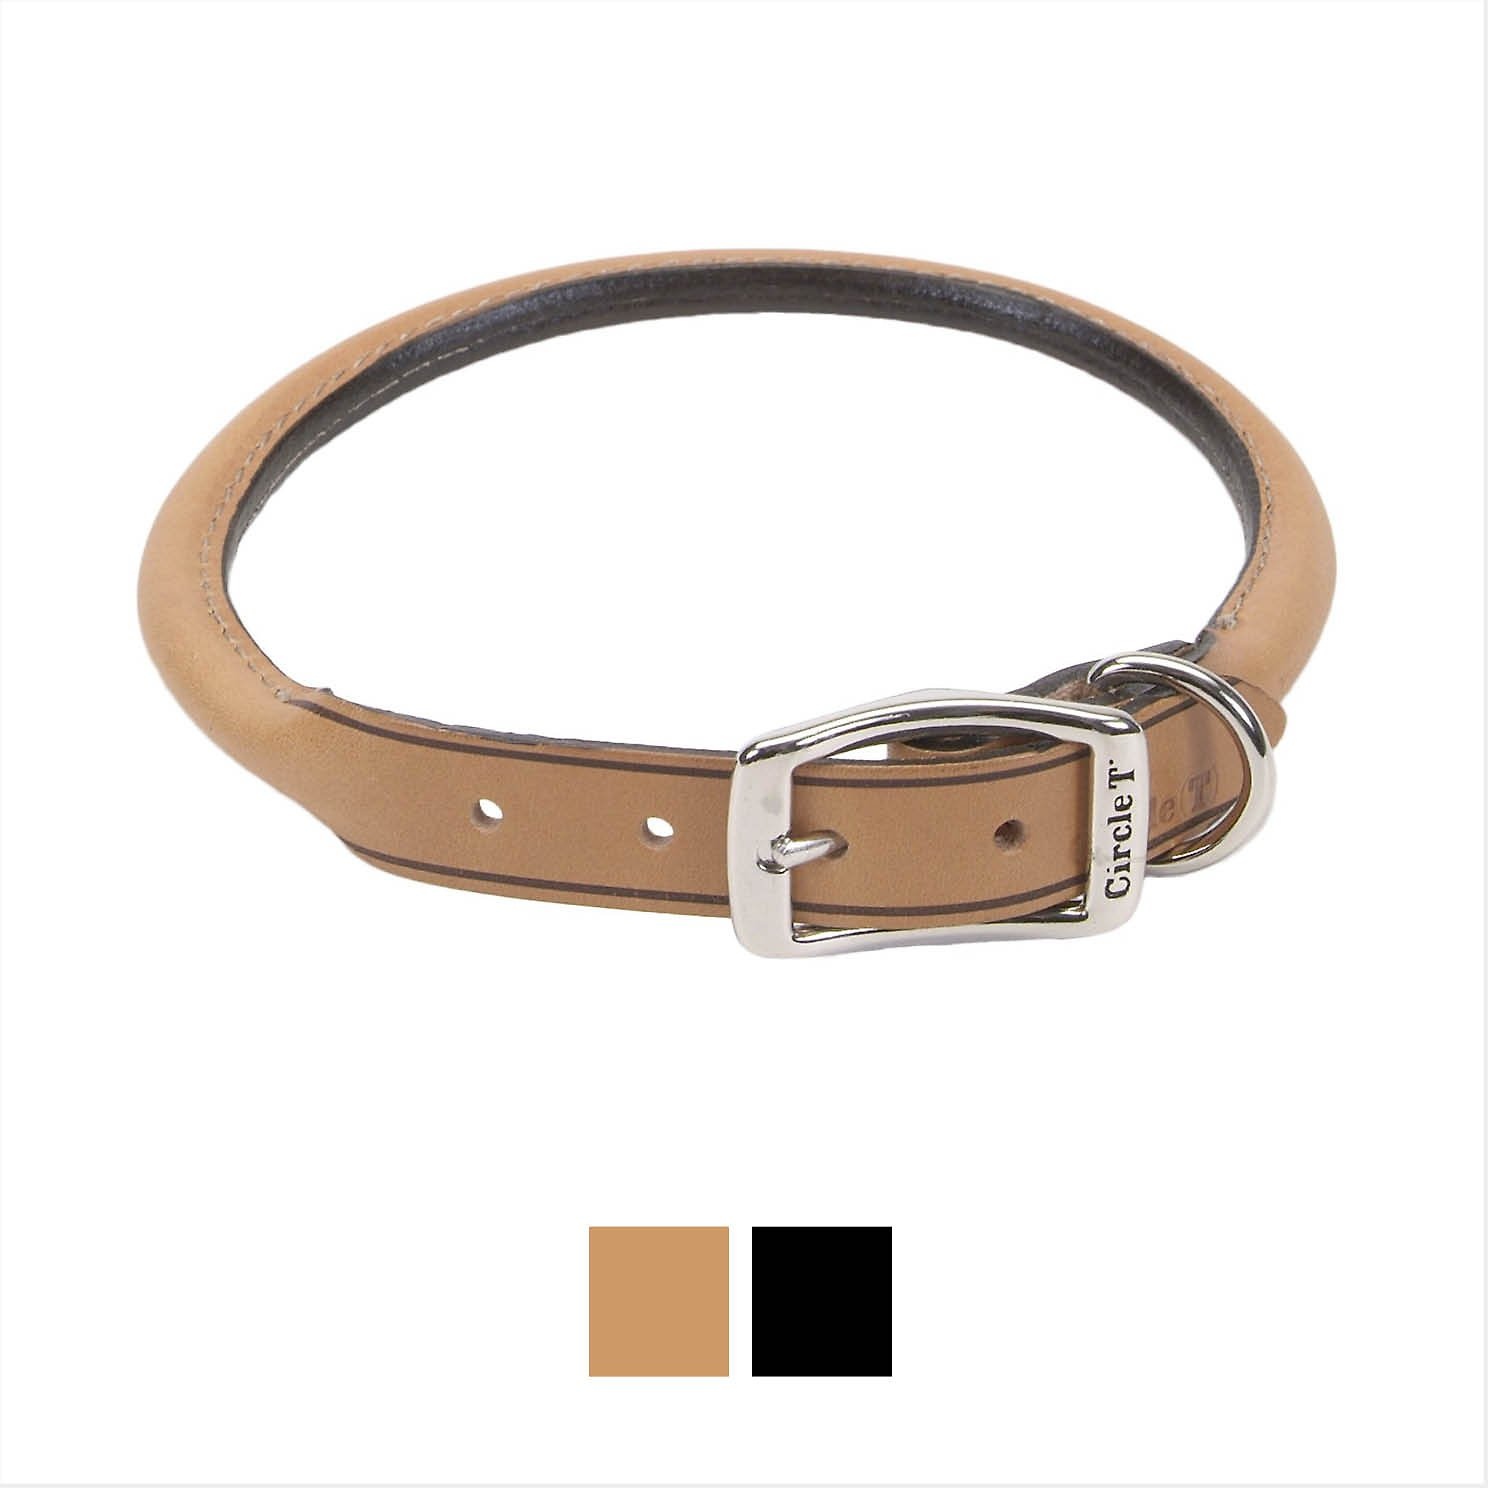 Circle T Oak Tanned Leather Round Dog Collar, 13.75 - 16 in, Black